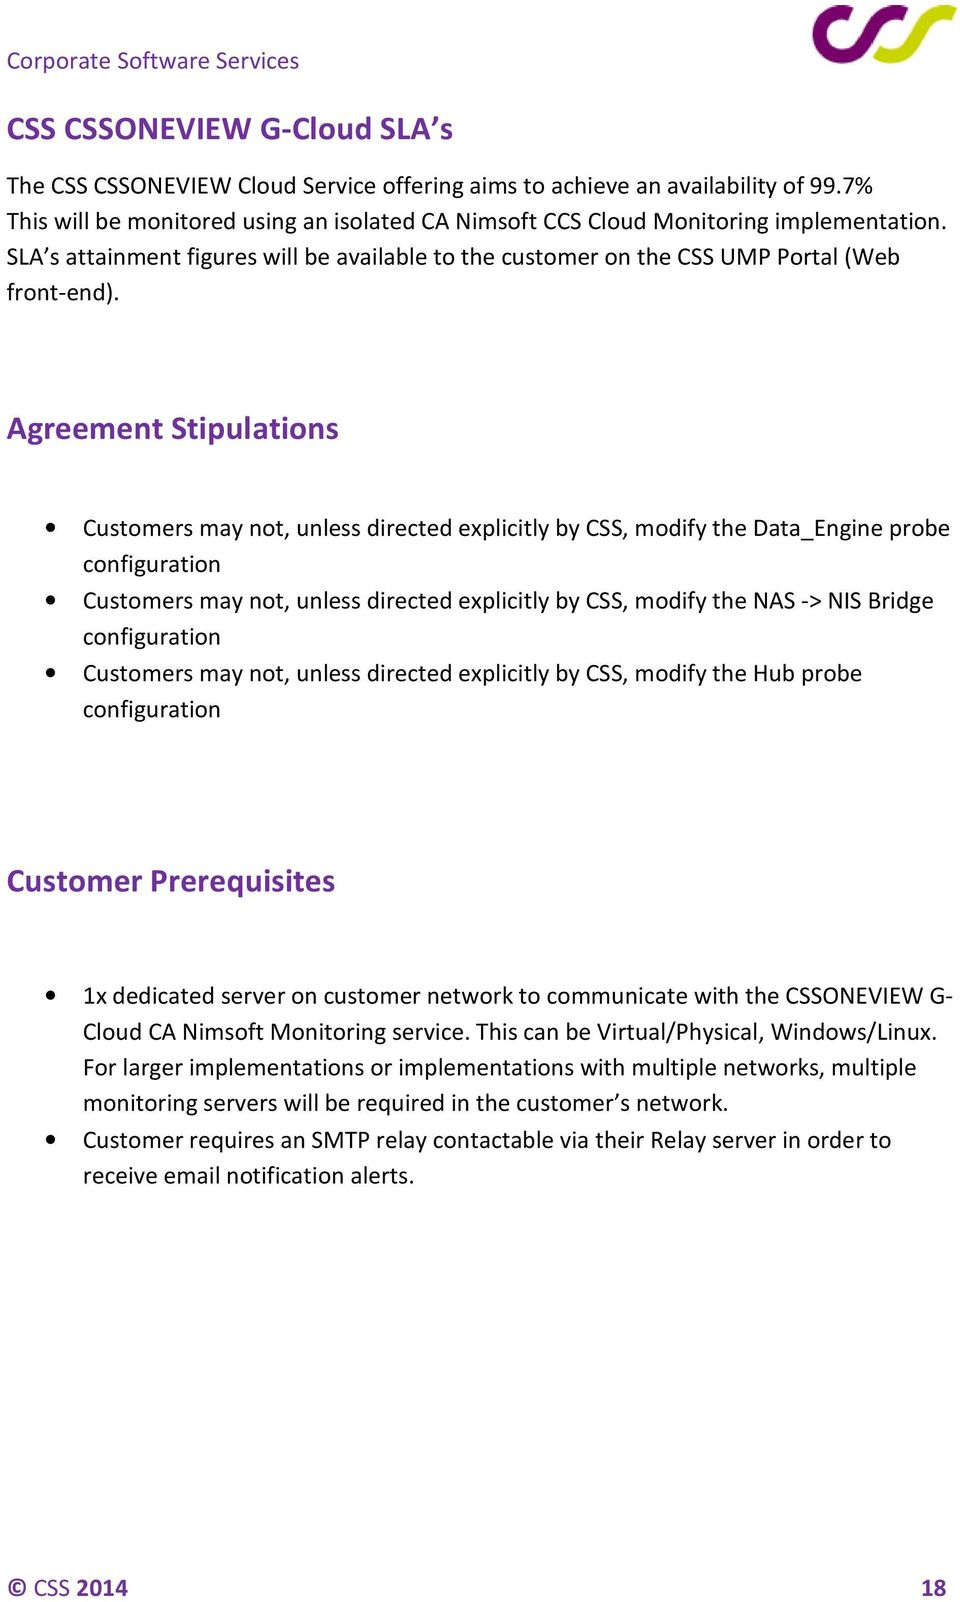 Agreement Stipulations Customers may not, unless directed explicitly by CSS, modify the Data_Engine probe configuration Customers may not, unless directed explicitly by CSS, modify the NAS -> NIS